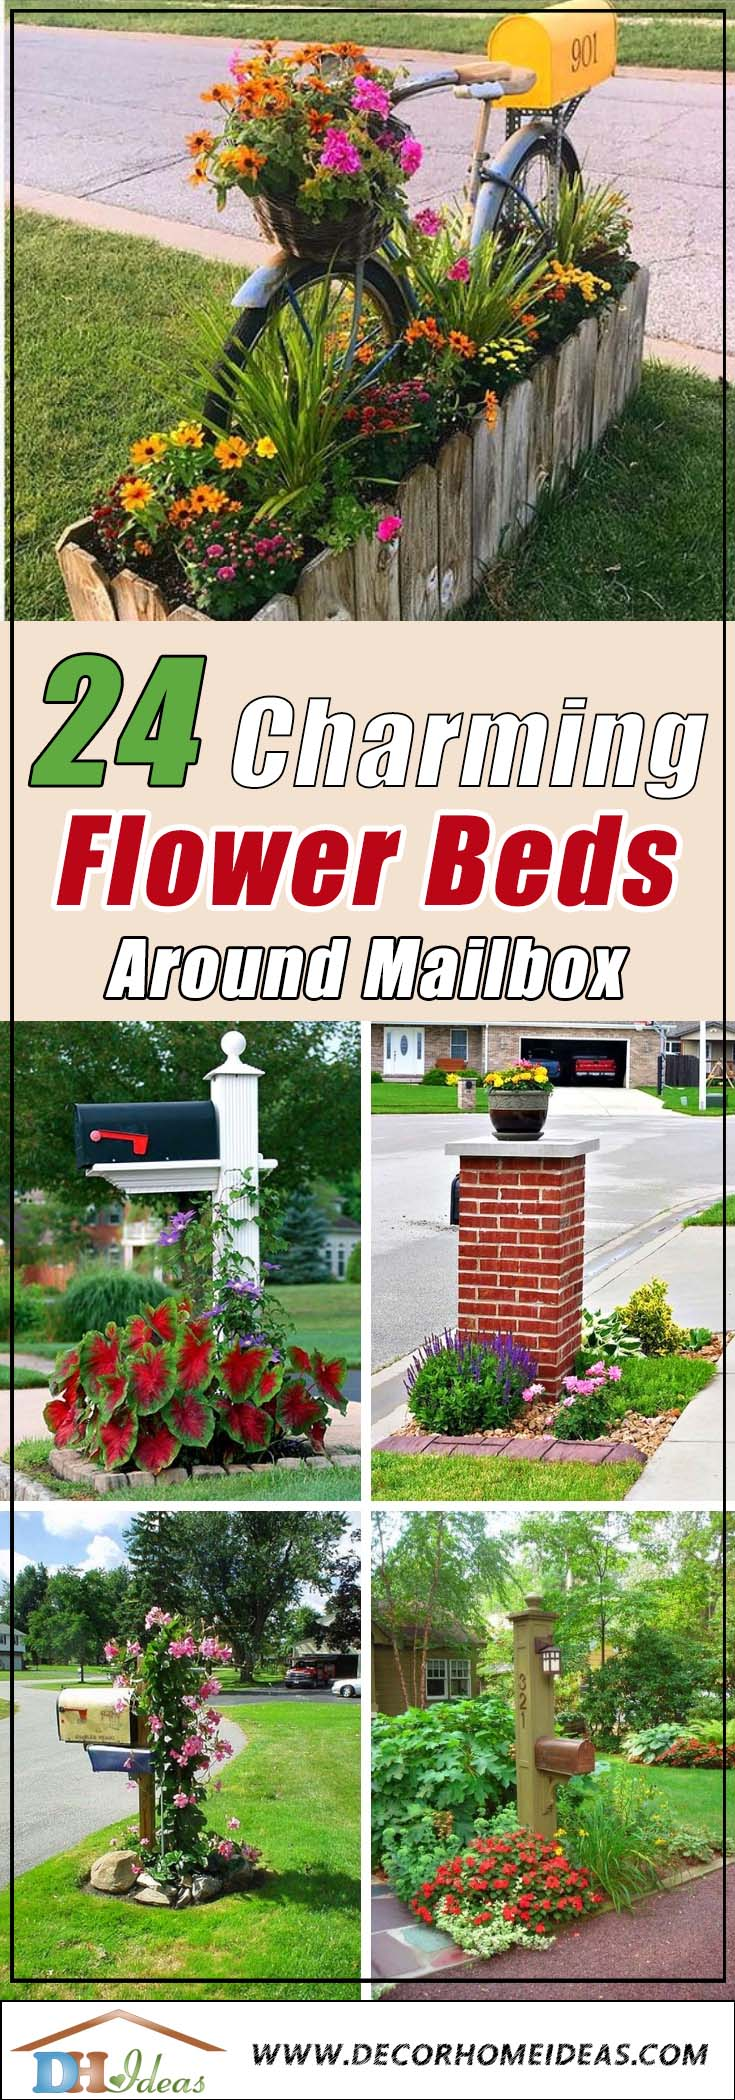 24 Charming Flower Beds Around Mailboxes #flowerbed #mailbox #garden #curbappeal #flowers #decorhomeideas